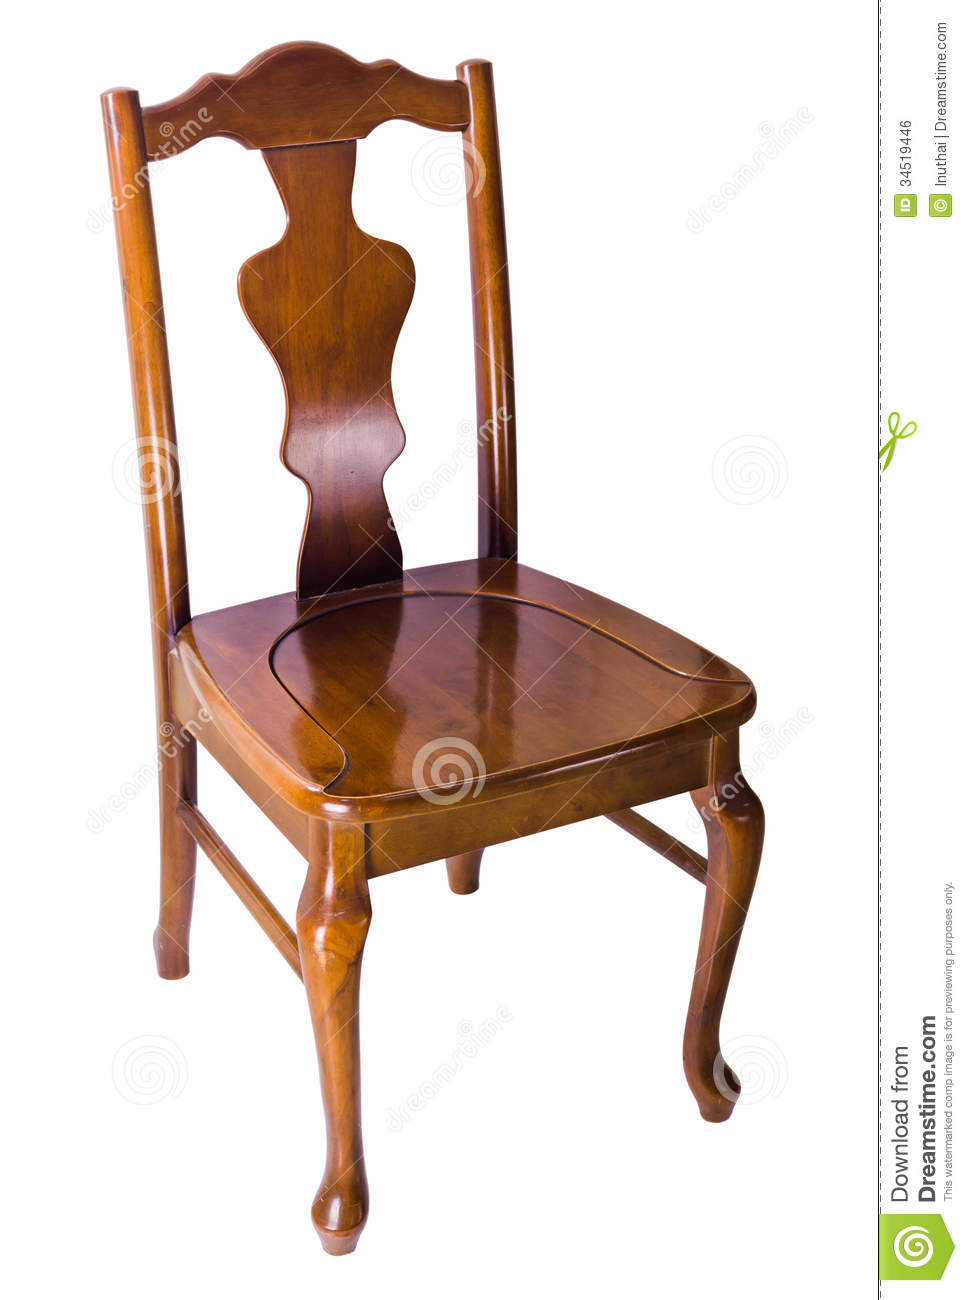 Old wooden chair, vintage style - Old Wooden Chair, Vintage Style Stock Photo - Image Of Brown, Craft